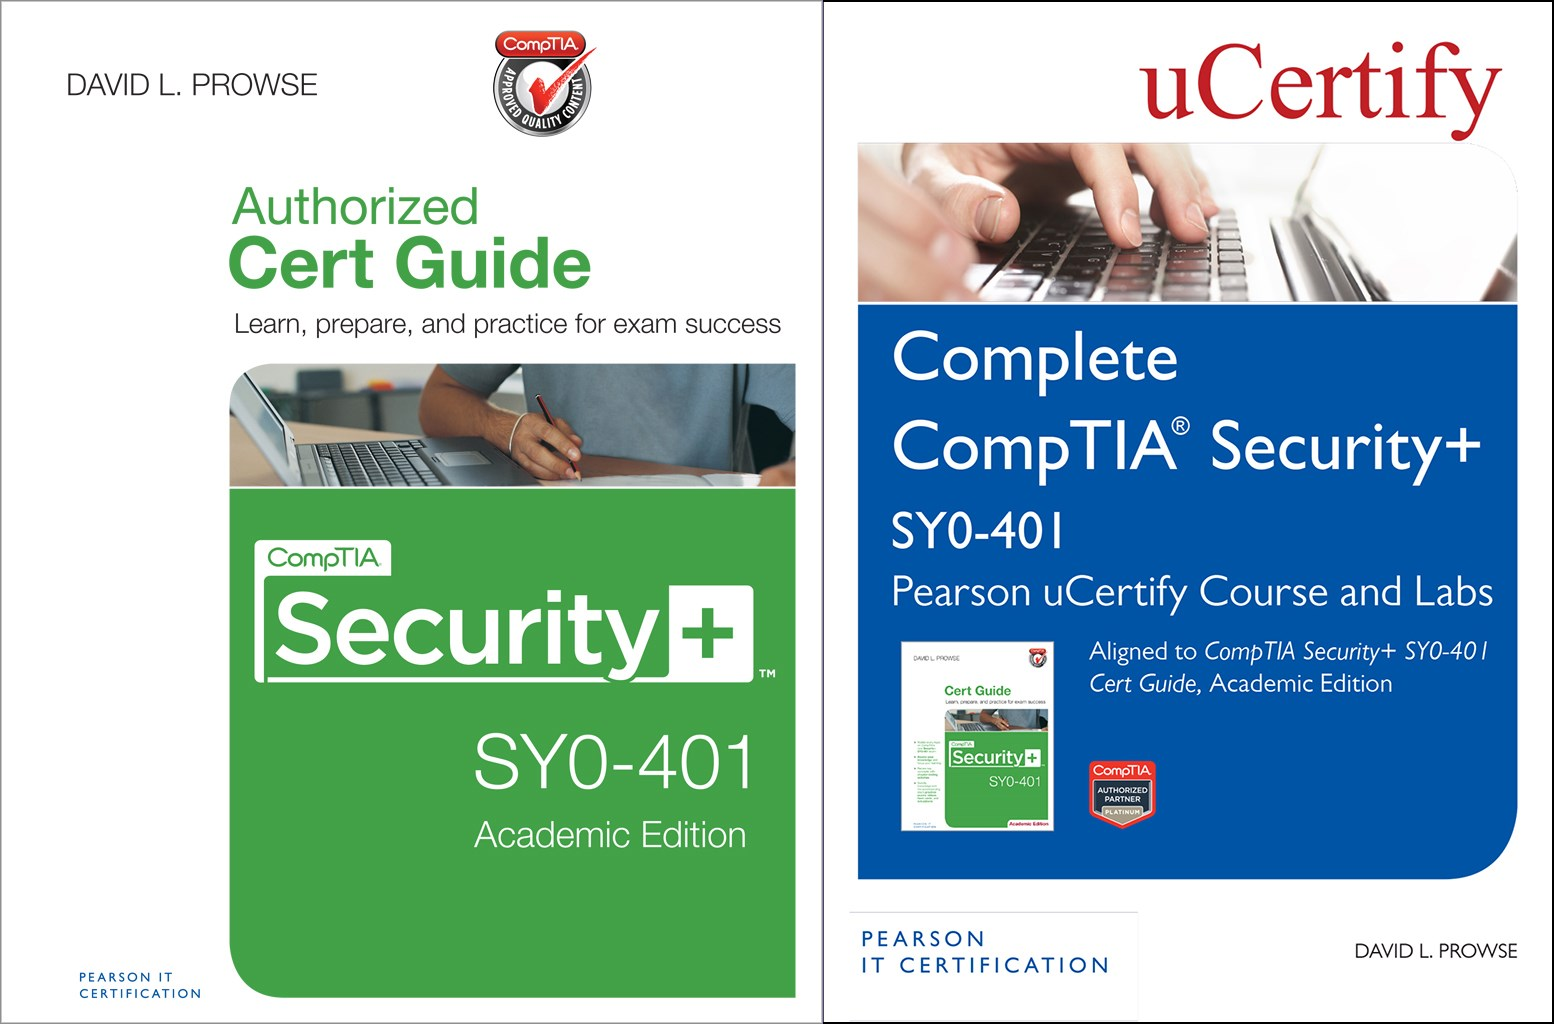 CompTIA Security+ SY0-401 Pearson uCertify Course and Labs and Textbook Bundle